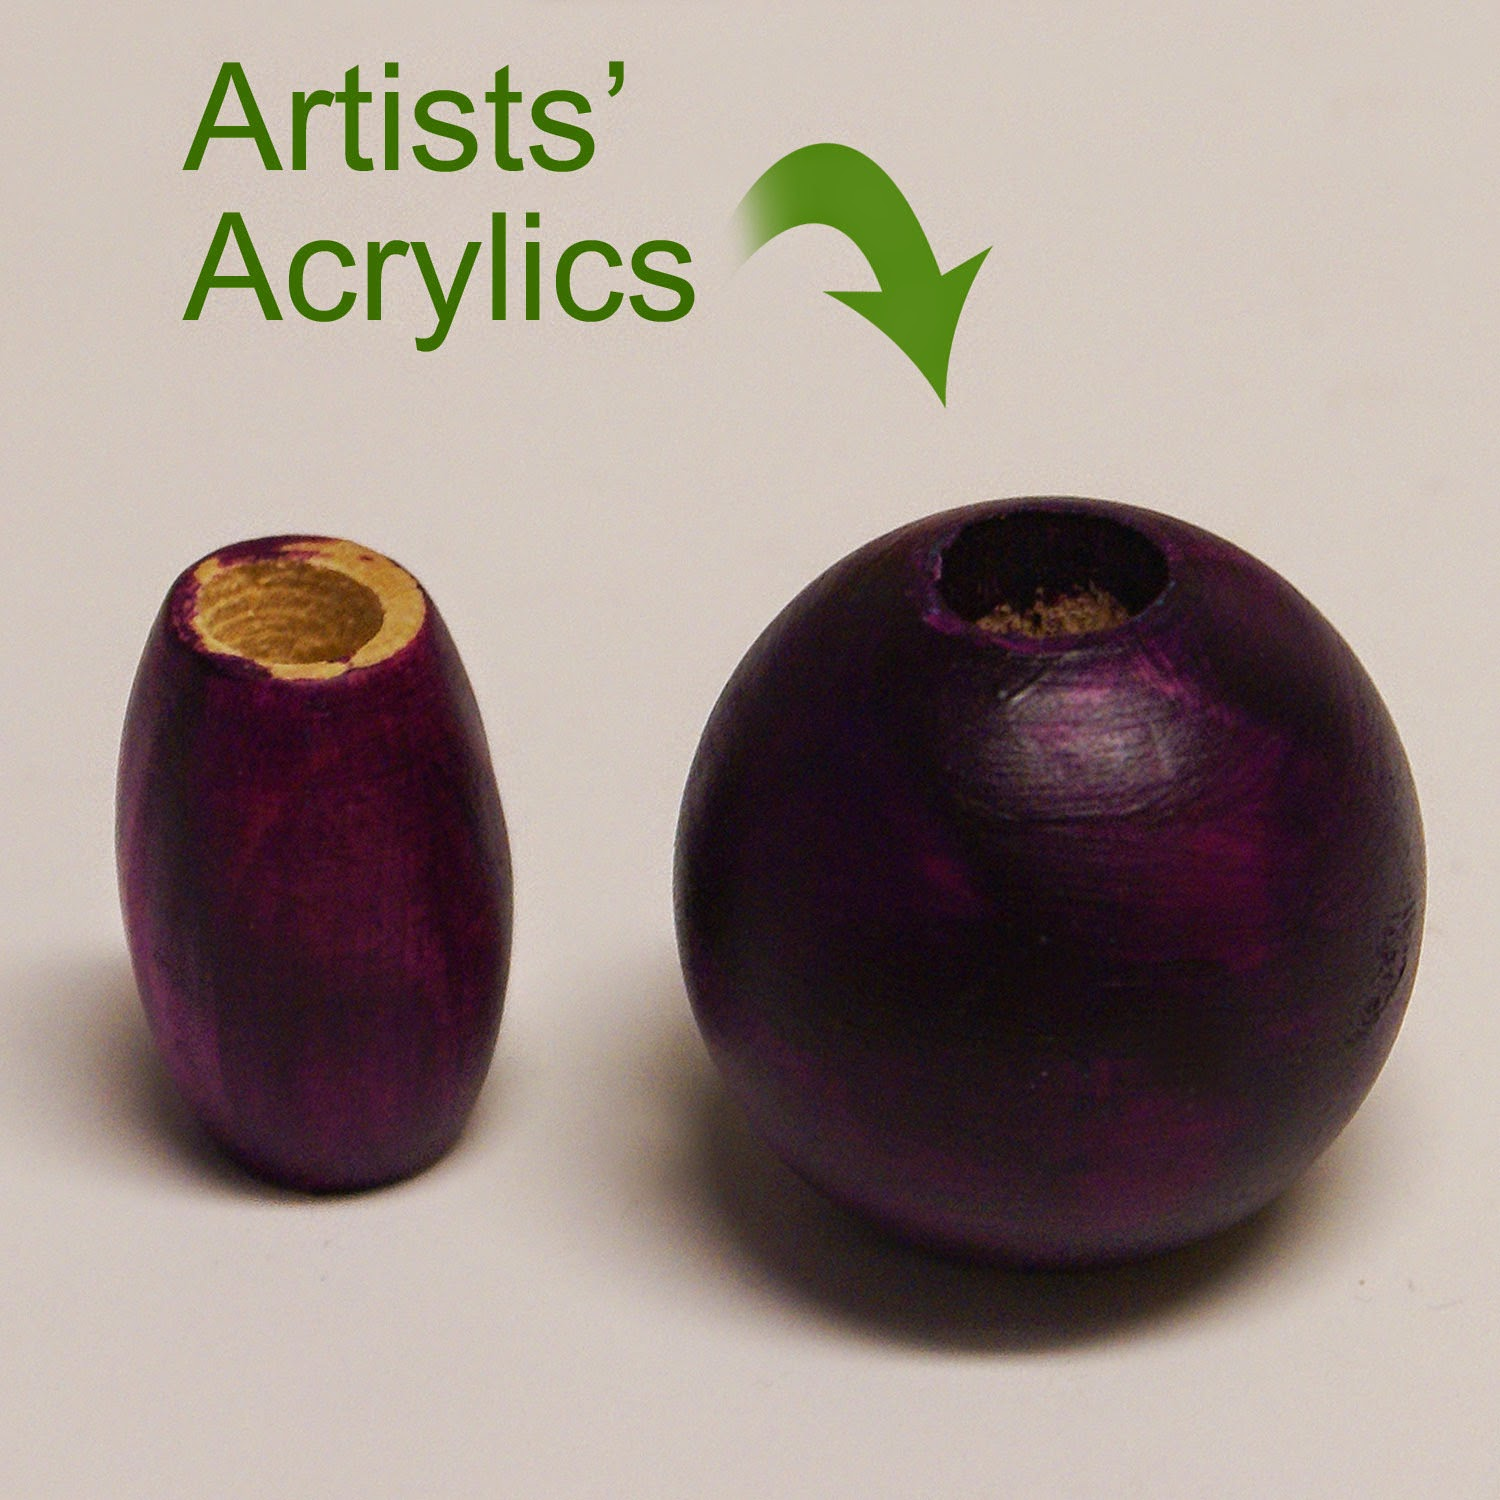 Artists' Acrylic painted beads leave a shiny & stain-like finish